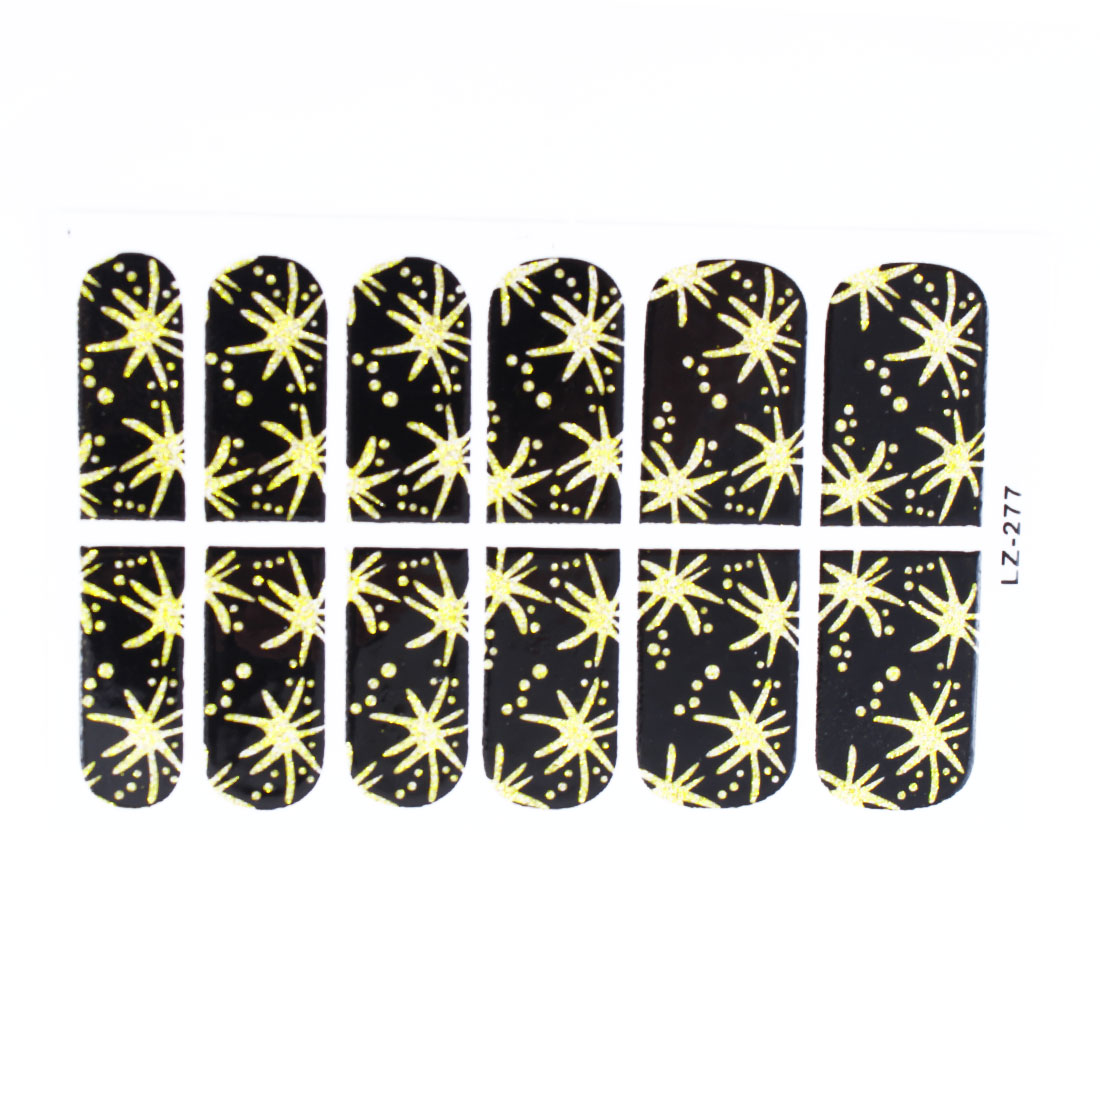 12 Pcs Bling Powder Decor Fireworks Pattern Nail Wraps Foils Art Stickers Black